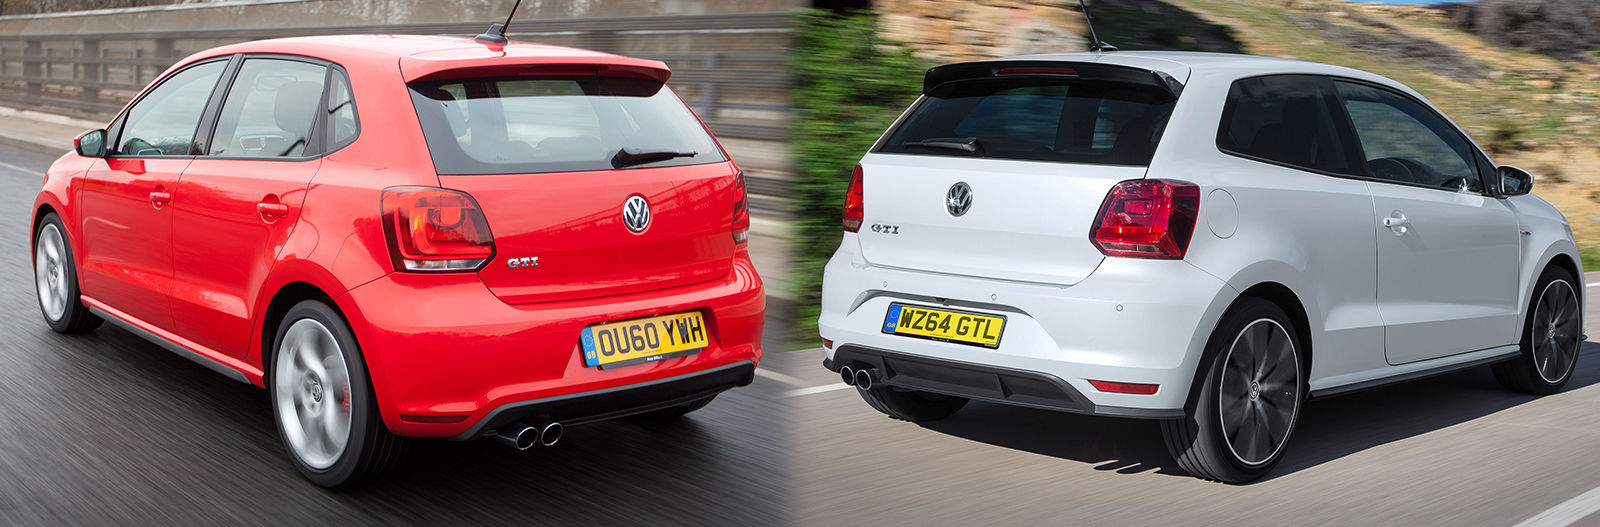 2015 Facelifted Volkswagen Polo GTI Old Vs New Compared